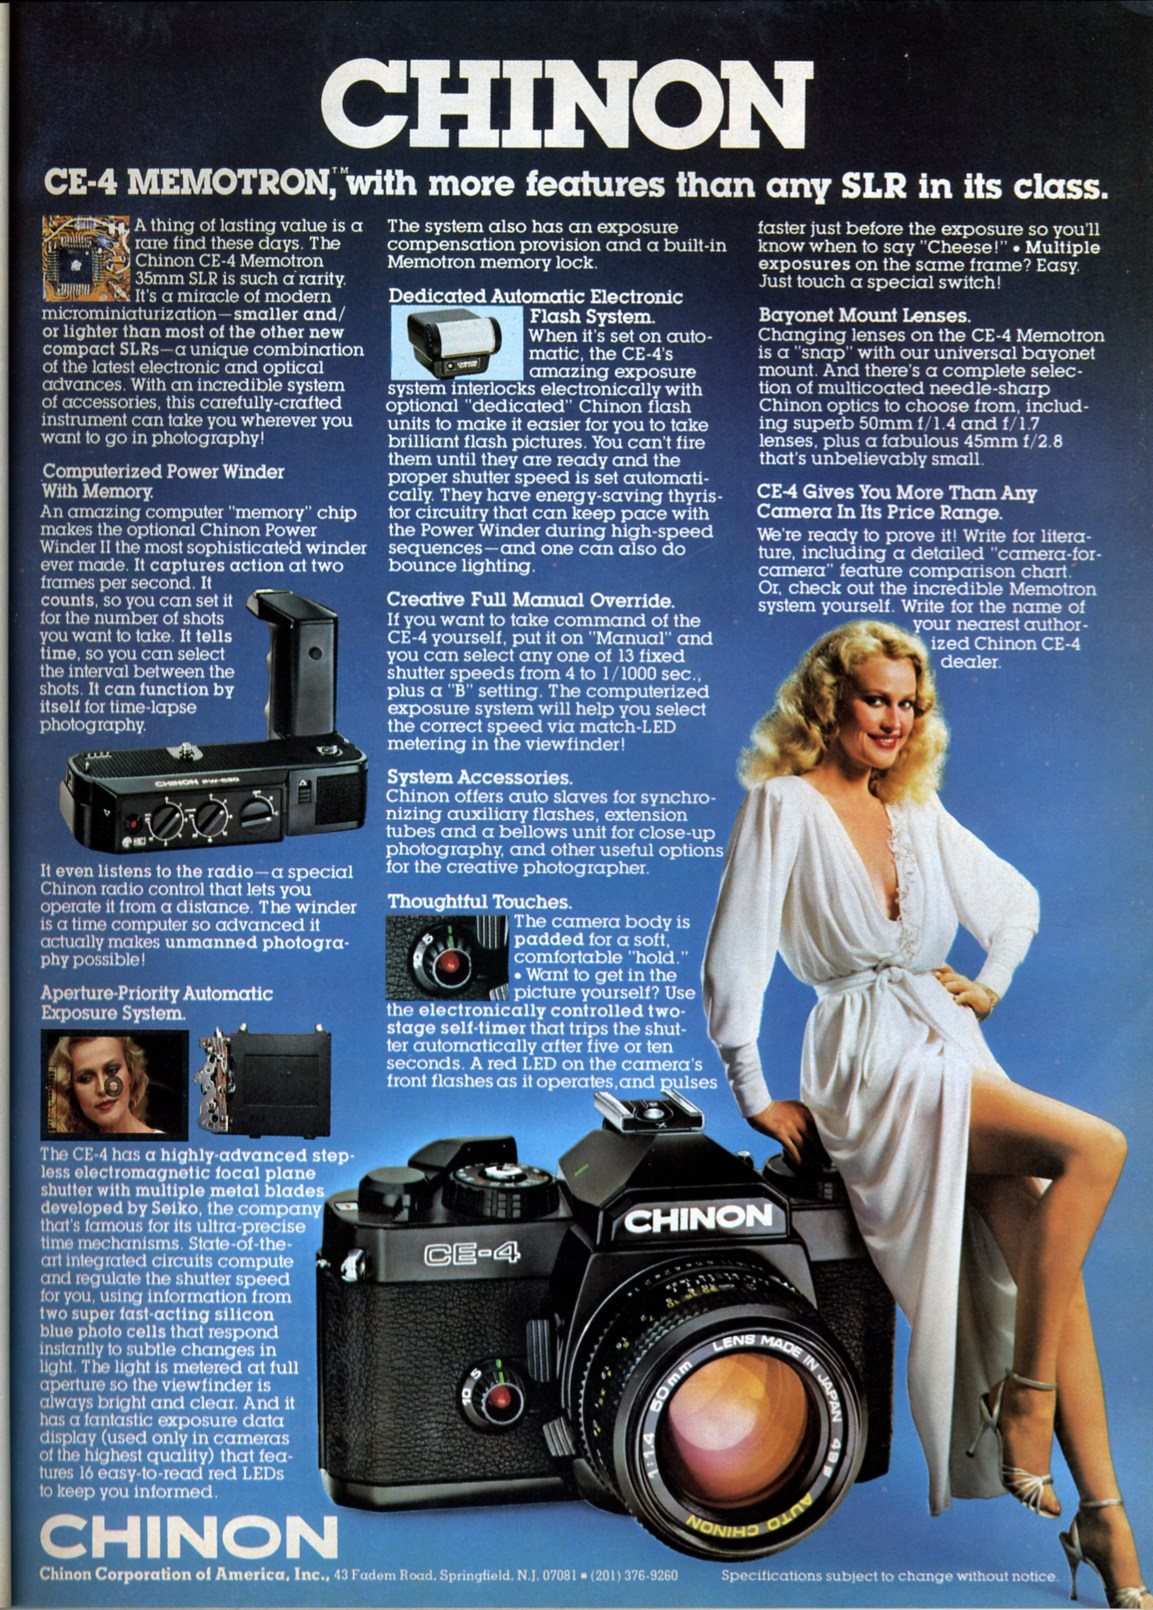 Ah.... they really don't make adverts like that anymore do they..... i wonder what happened to that massive camera.....